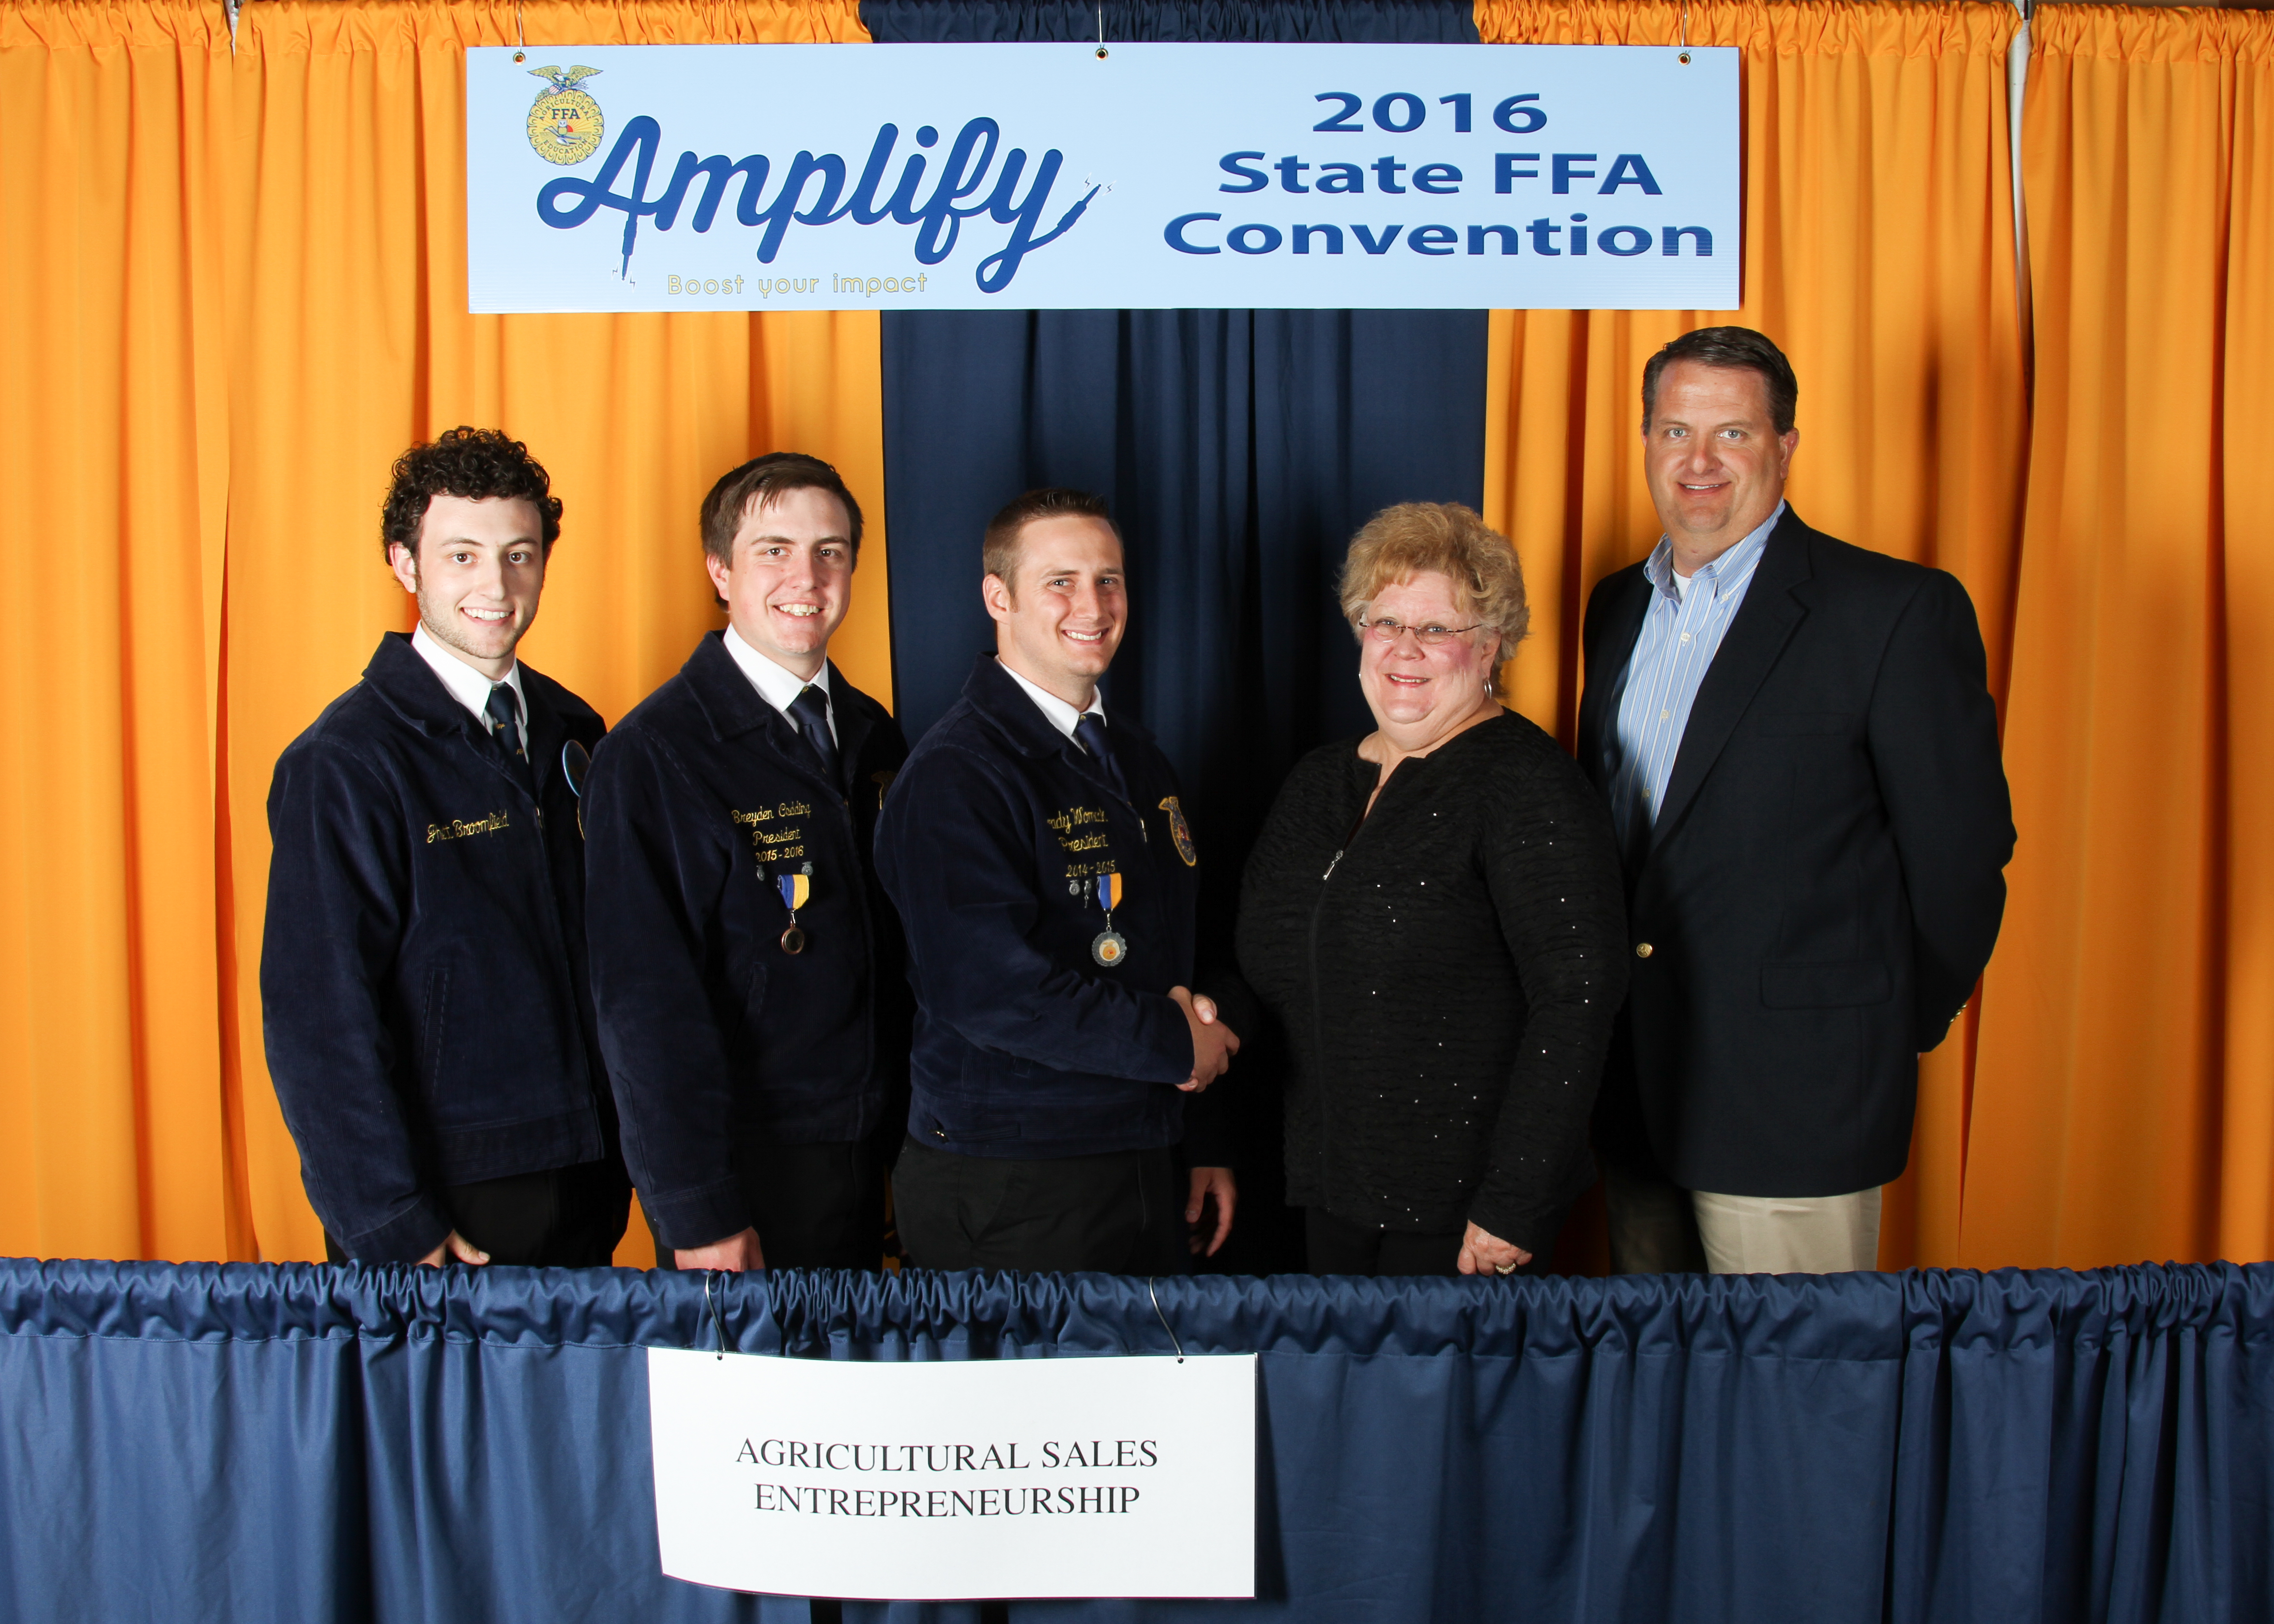 Brady Womack (third from left) of the Morris FFA Chapter captured first-place honors in the 2016 Oklahoma FFA Agricultural Sales Entrepreneurship State Proficiency Award area. Joes Jones (right) of Livingston Machinery and Linda Shepard (second from right) of Pioneer Cellular congratulate Womack as well as Jhett Broomfield (left) of the Hennessey FFA Chapter and Breyden Codding of the Guthrie FFA Chapter, who received second and third place, respectively.